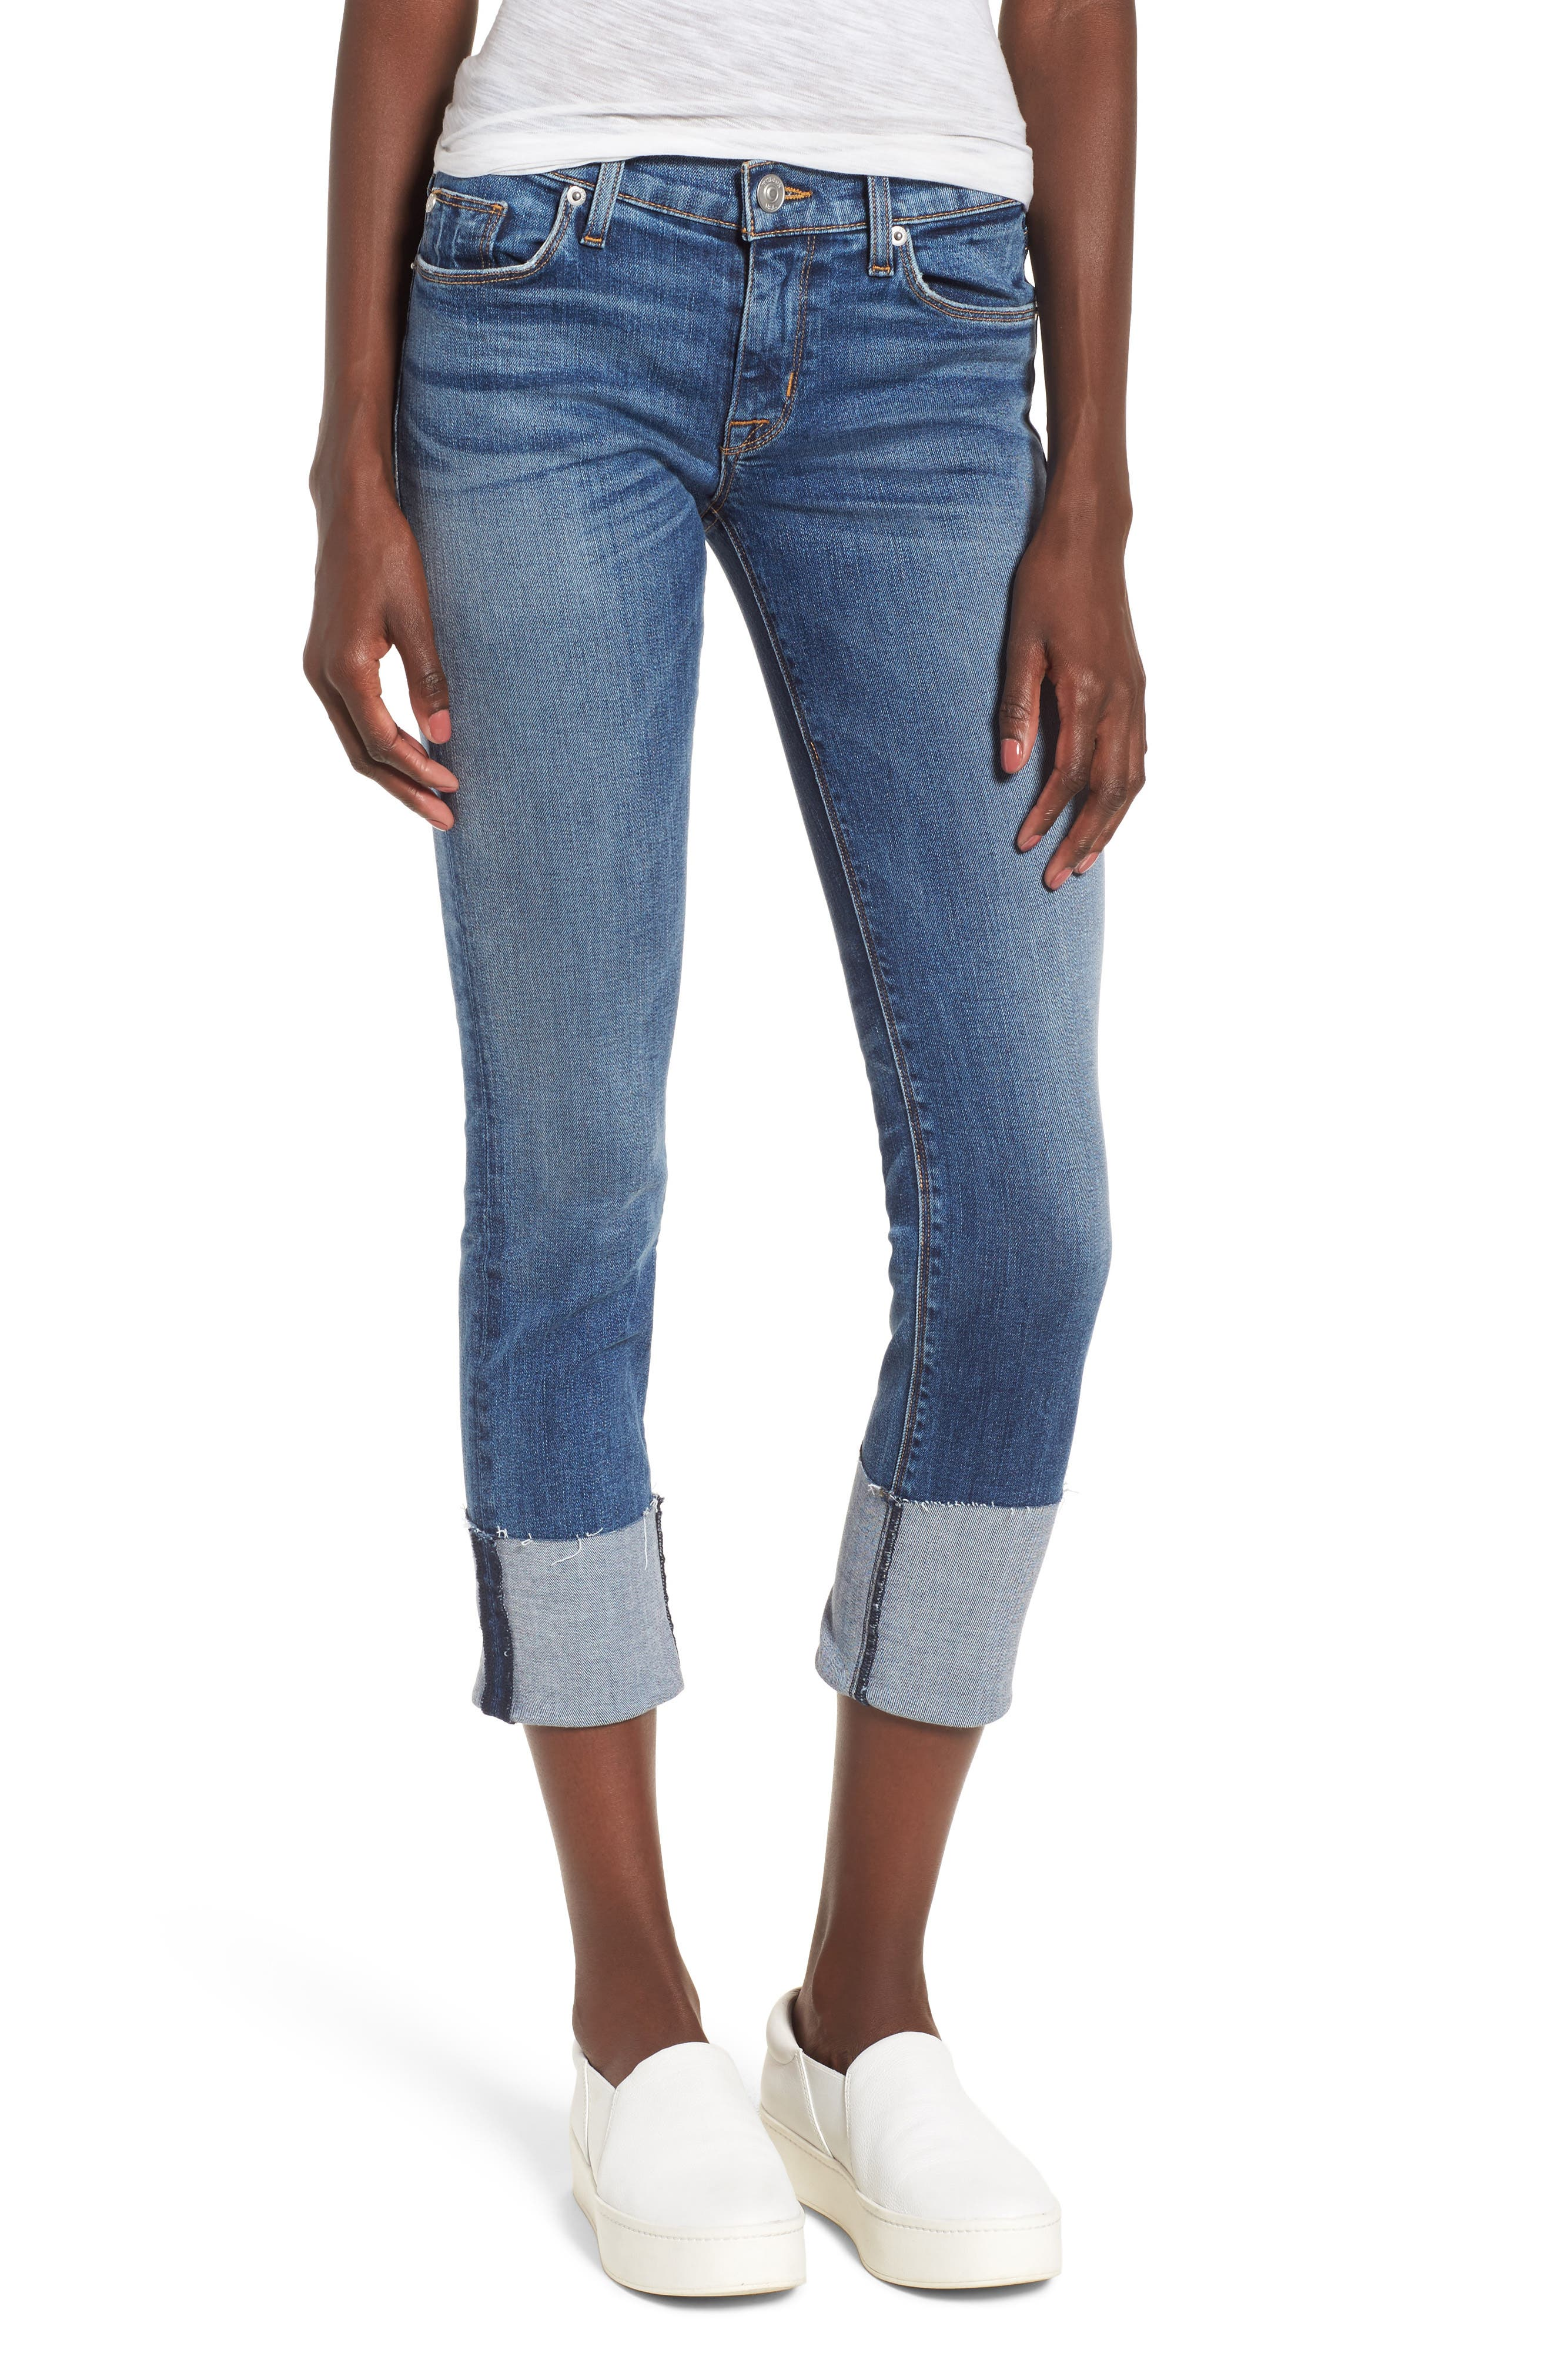 HUDSON JEANS Tally Cuffed Crop Skinny Jeans, Main, color, 426